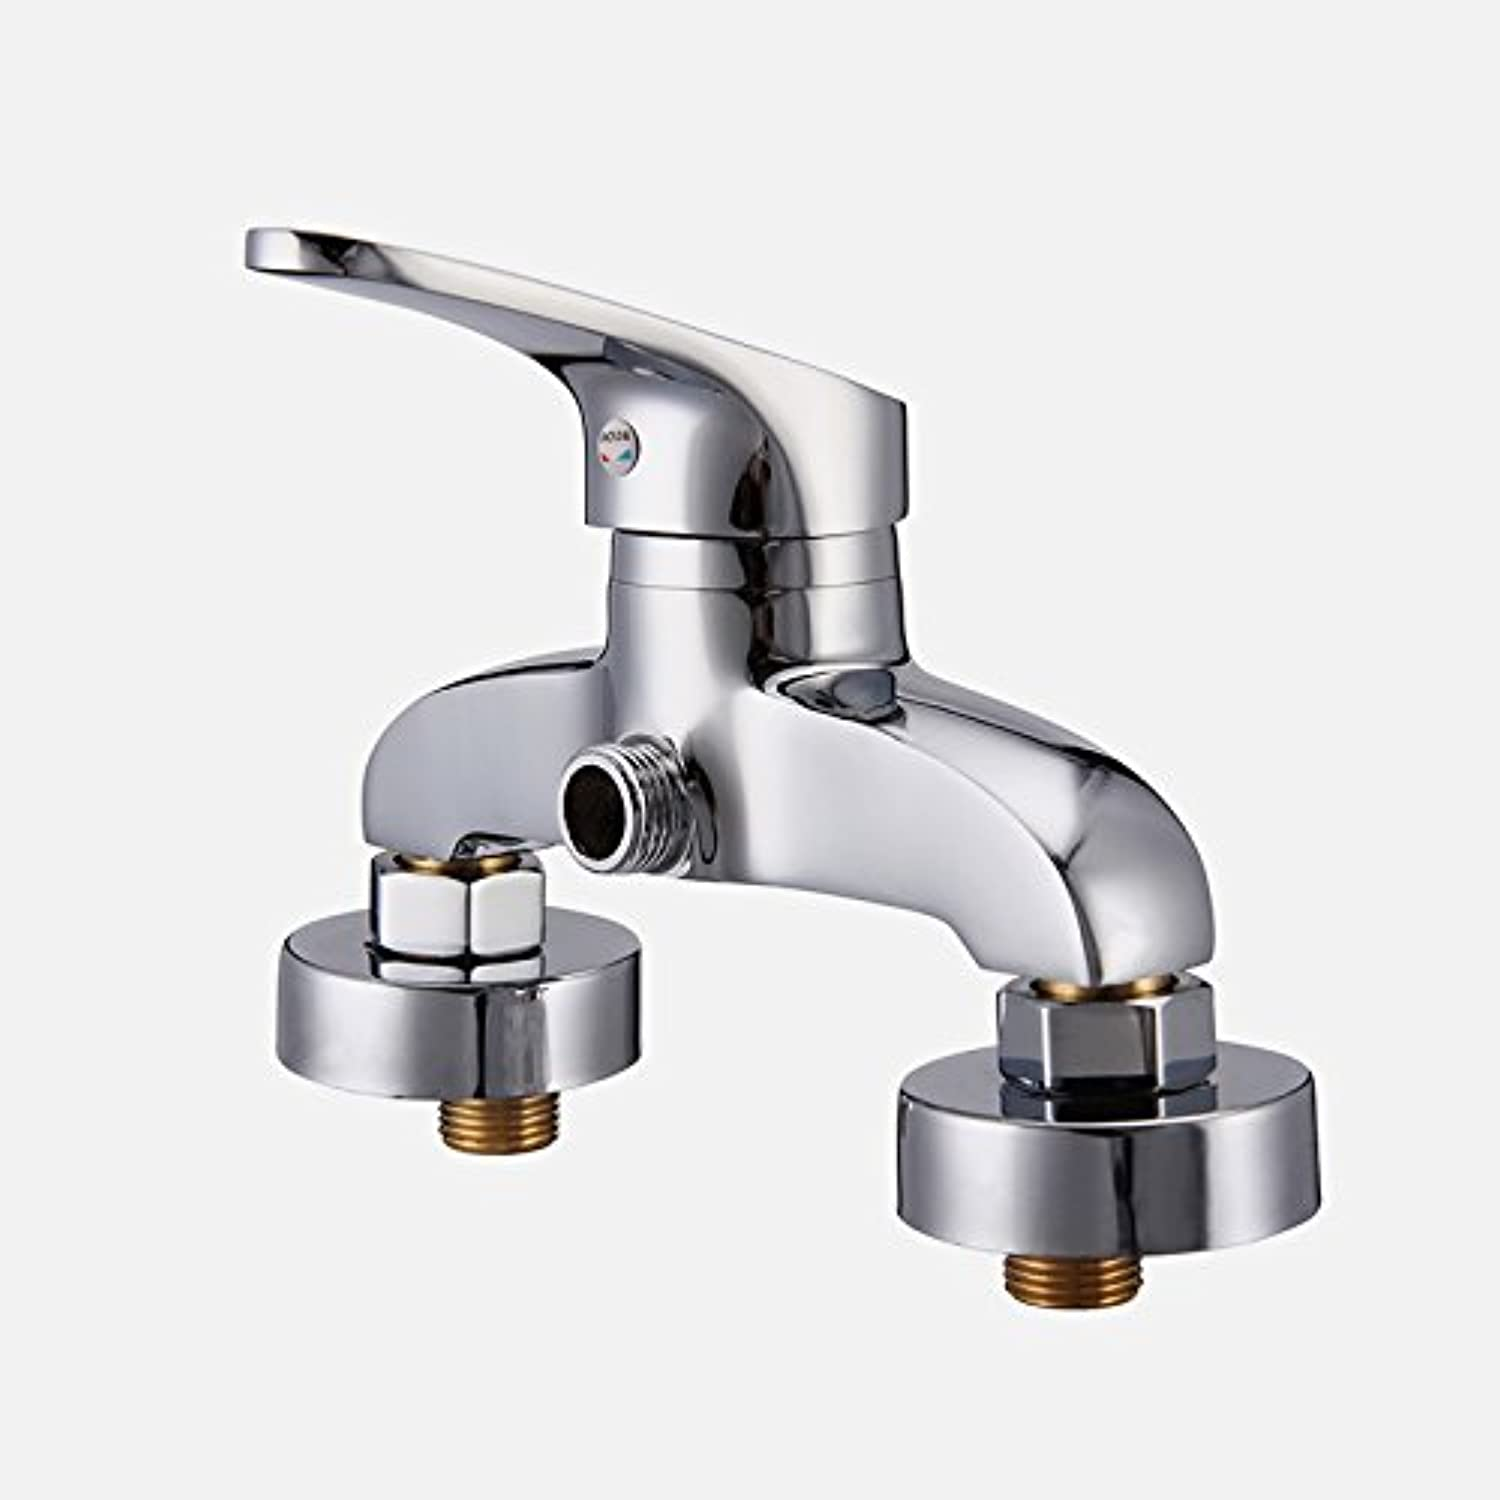 Hlluya Professional Sink Mixer Tap Kitchen Faucet The copper shower faucet ttl down shower single handle cold and hot water mixing valve shower,1306